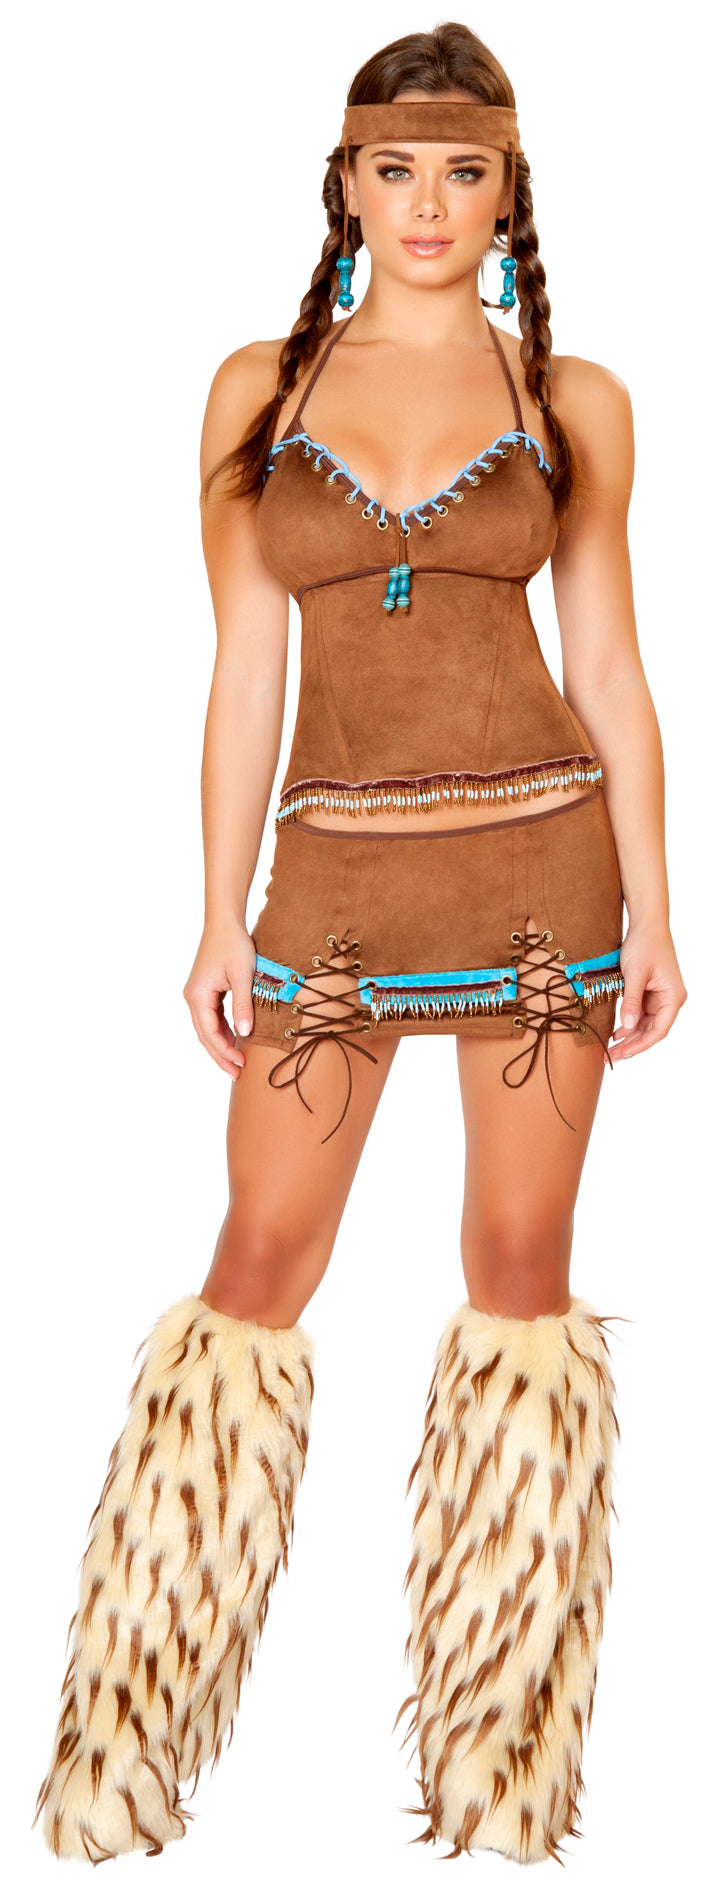 Native American Babe Costume Front RM4430